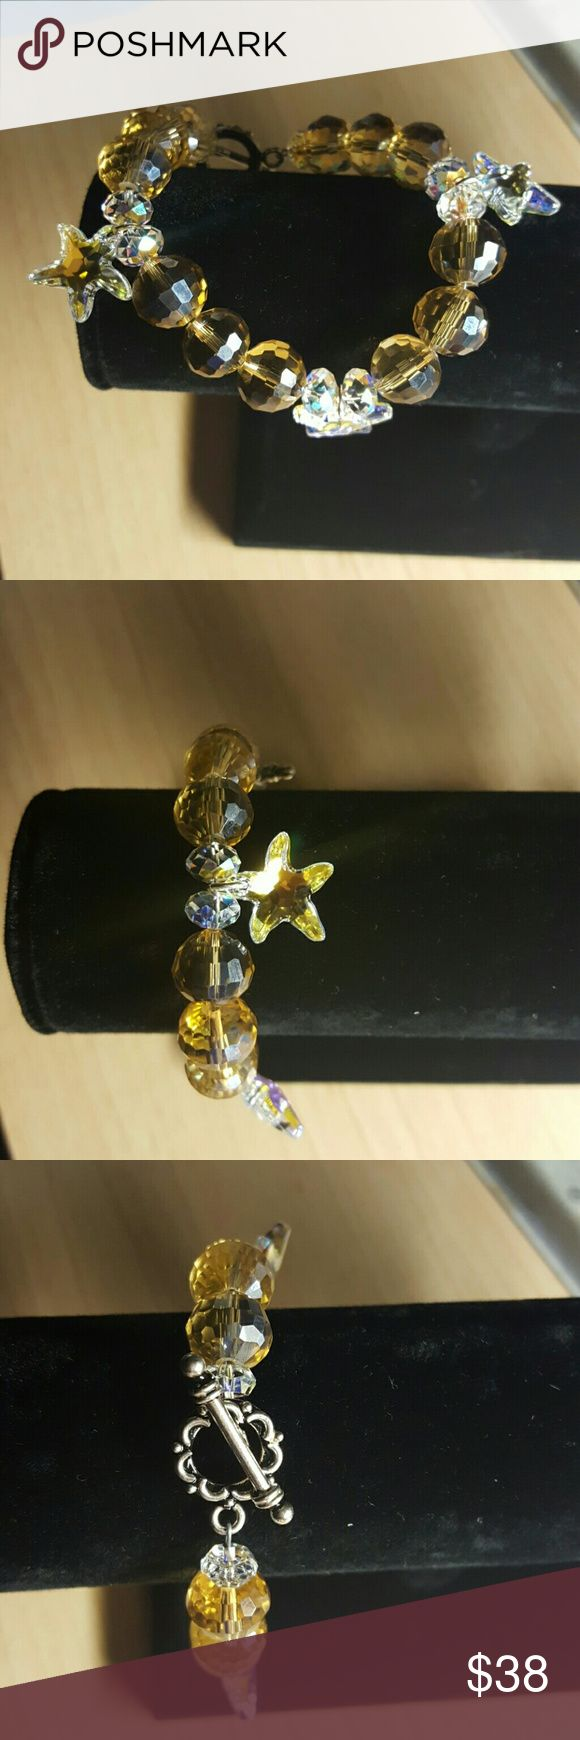 "SWAROVSKI STARFISH BRACELET Pretty gold chessboard 12mm Chinese crystals, THREE 16mm Swarovski AB CRYSTAL STARFISH with Rondelle AB SWAROVSKI CRYSTALS. Clasp is sterling silver. Bracelet measures 8"" long Jewelry Bracelets"